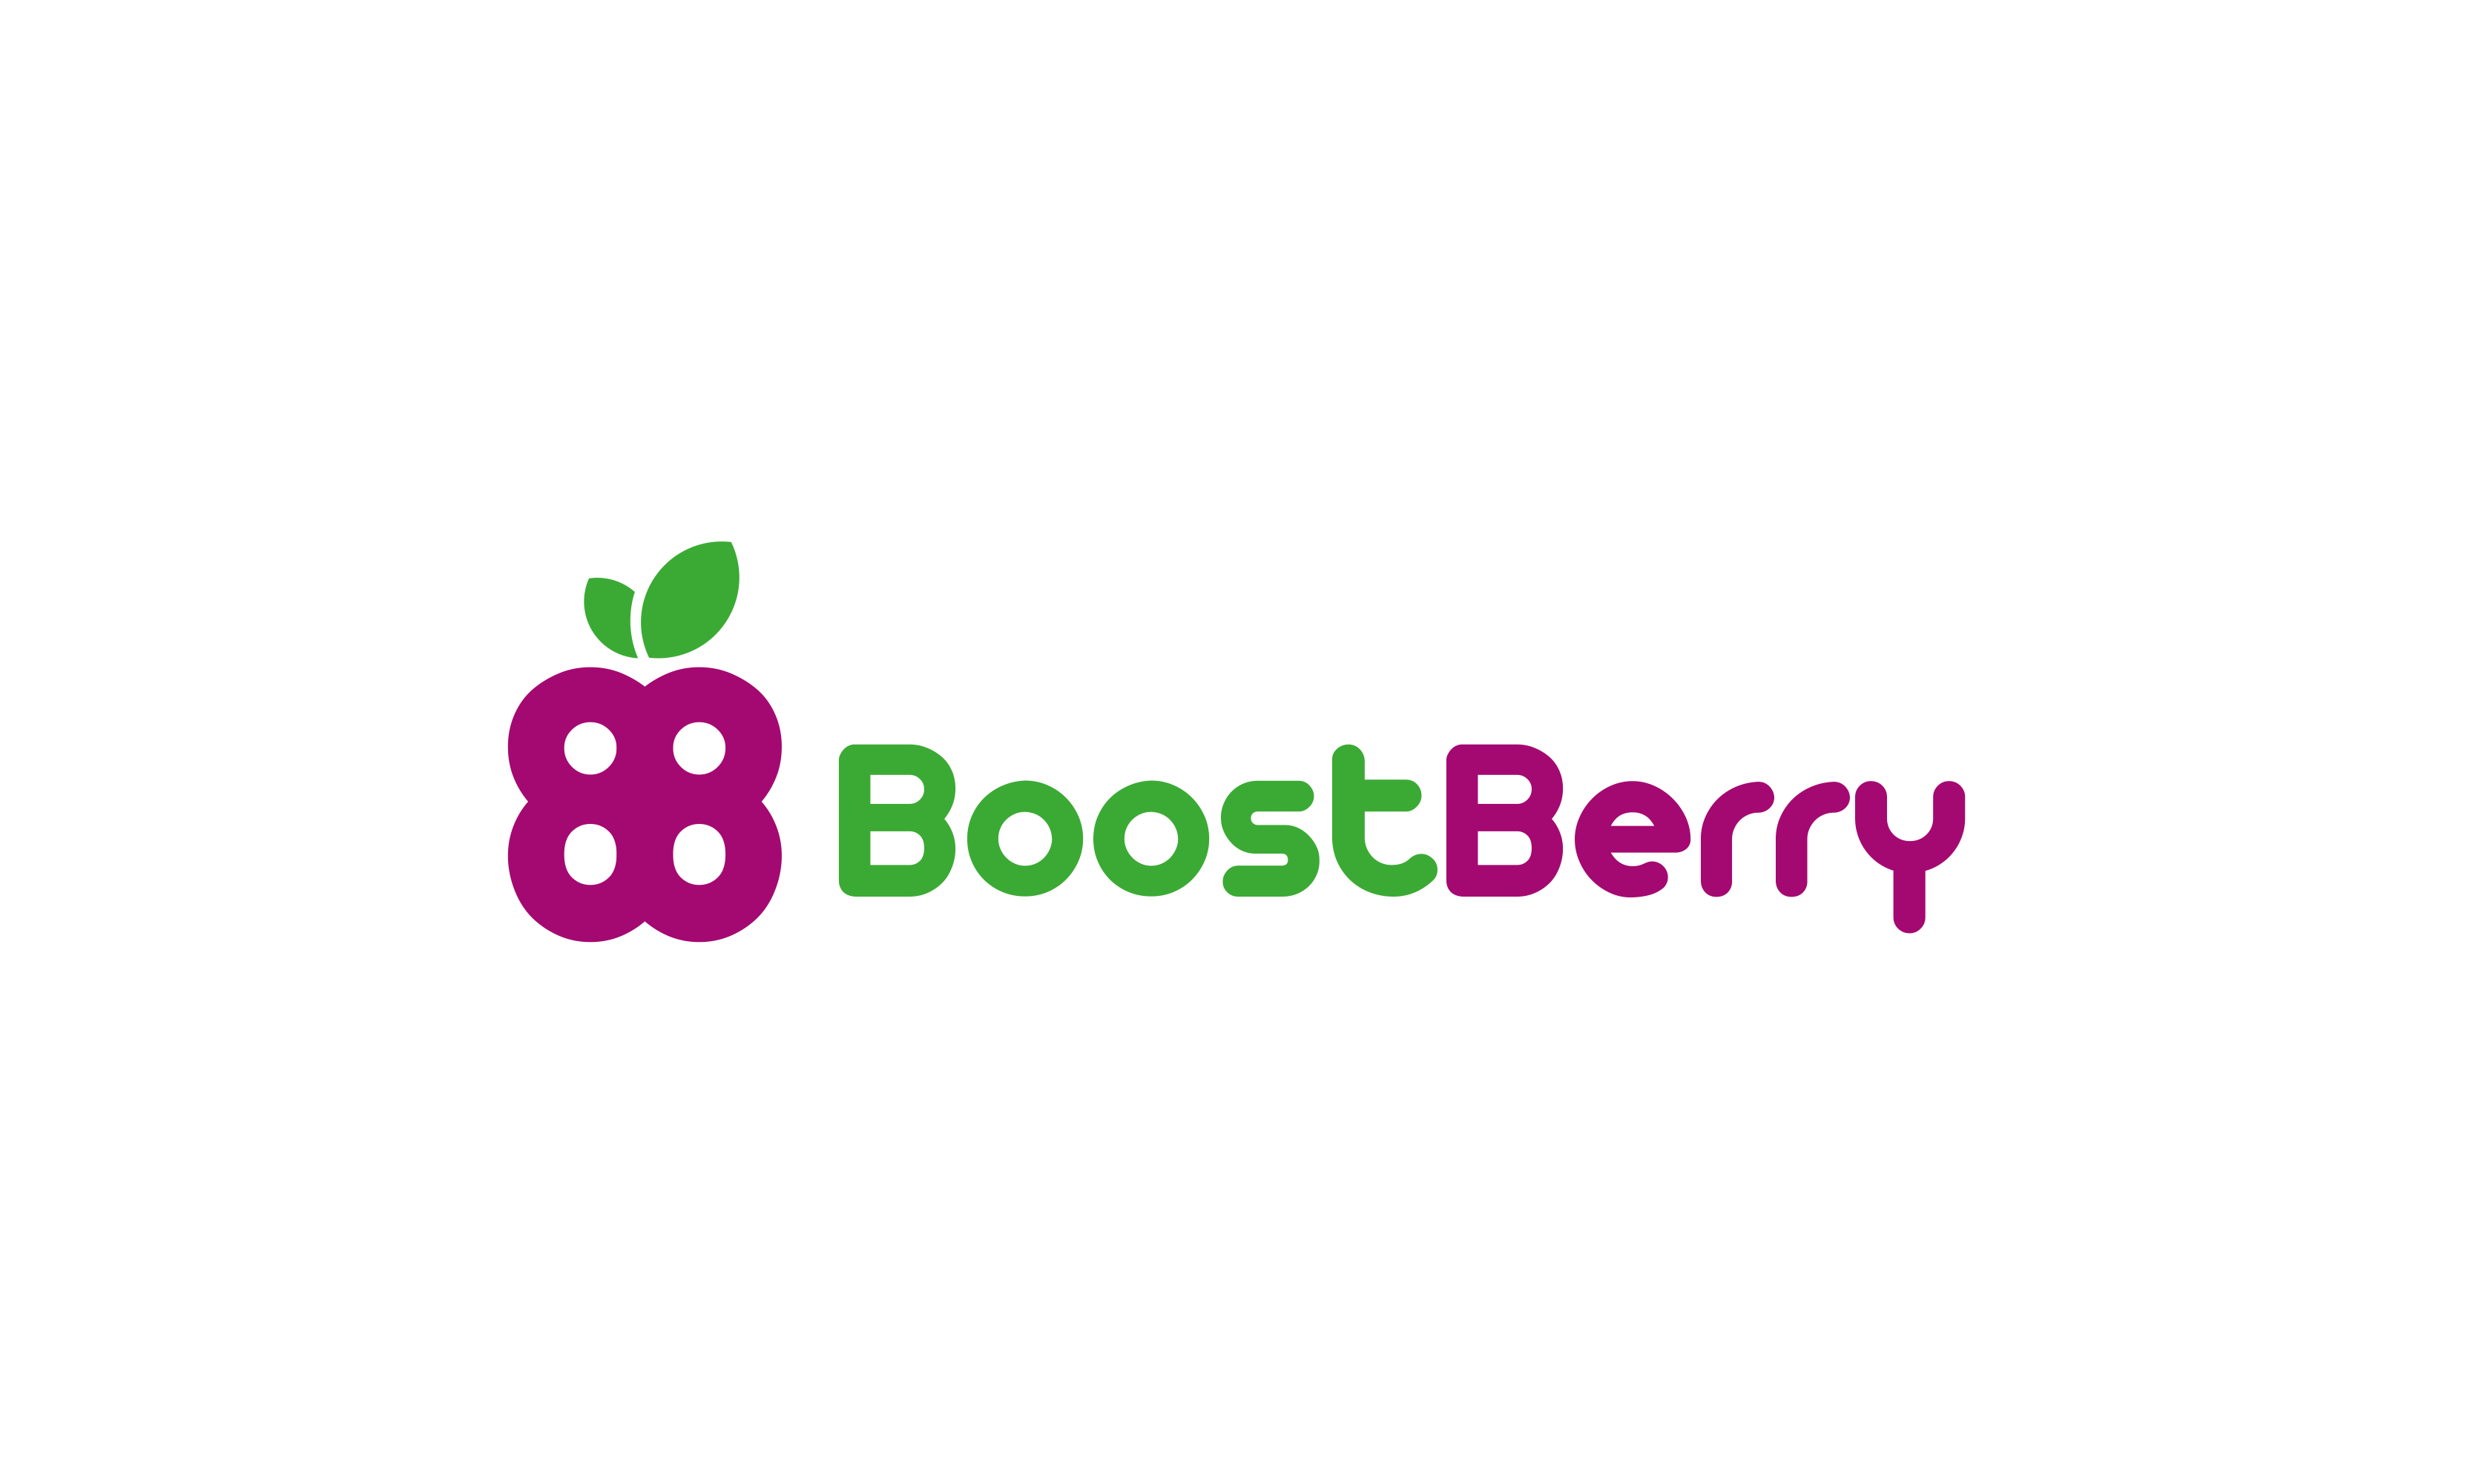 Boostberry